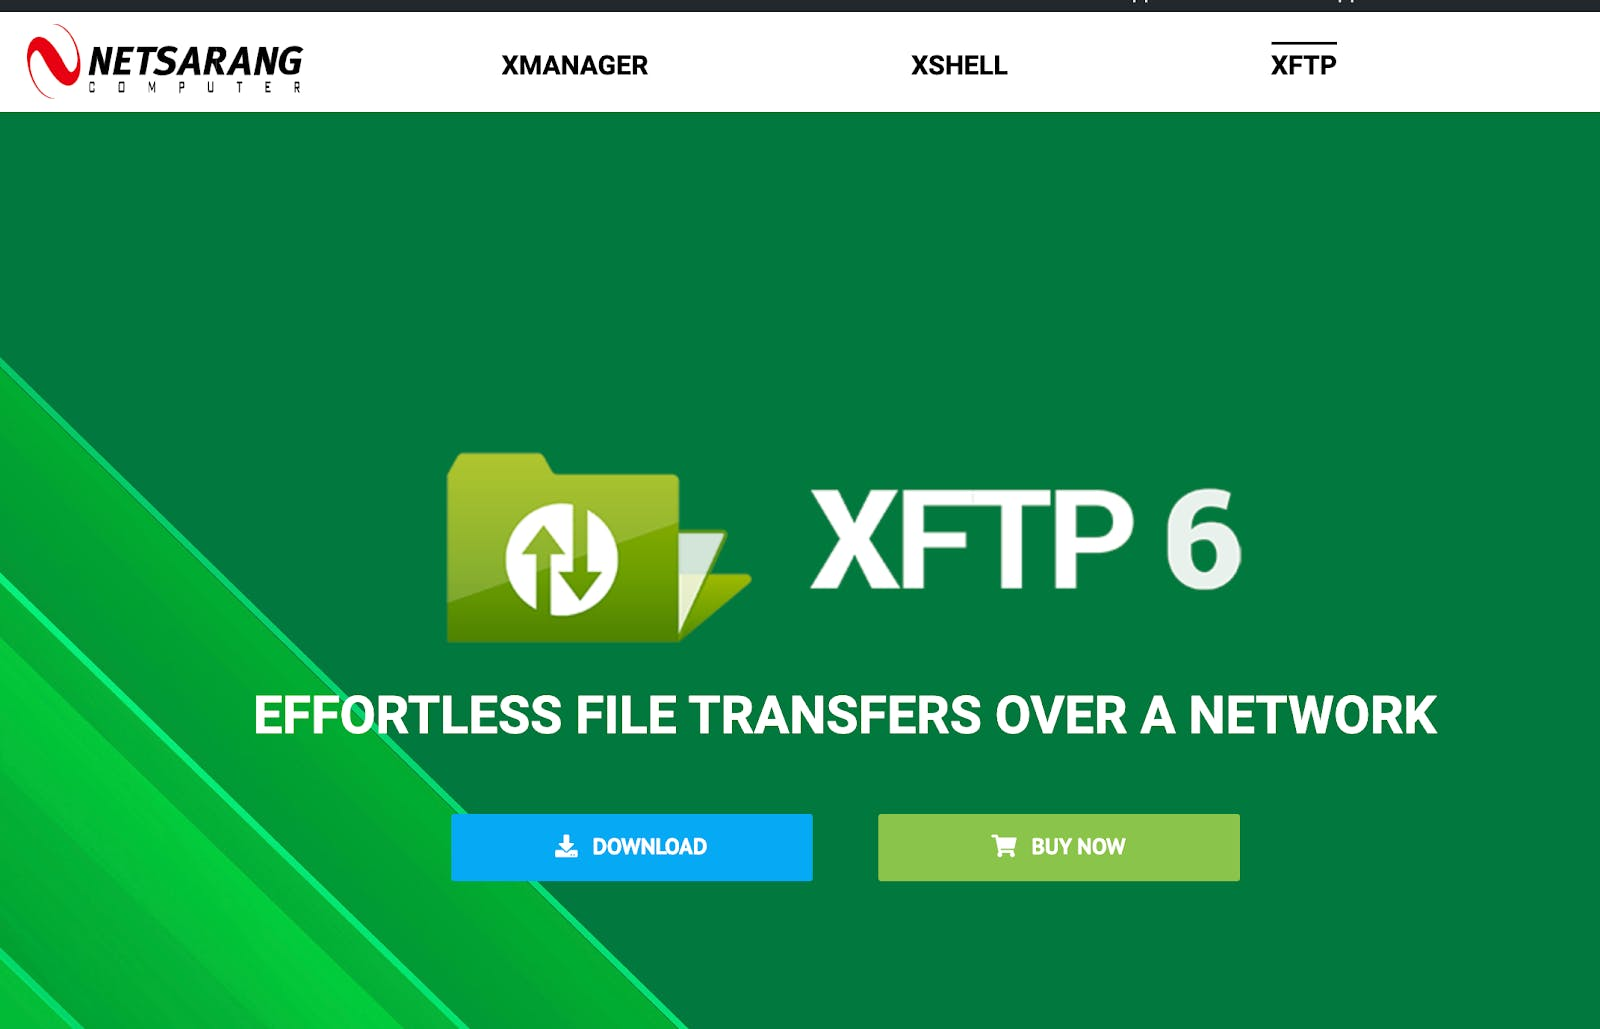 Netsarang XFTP 6 client download page.